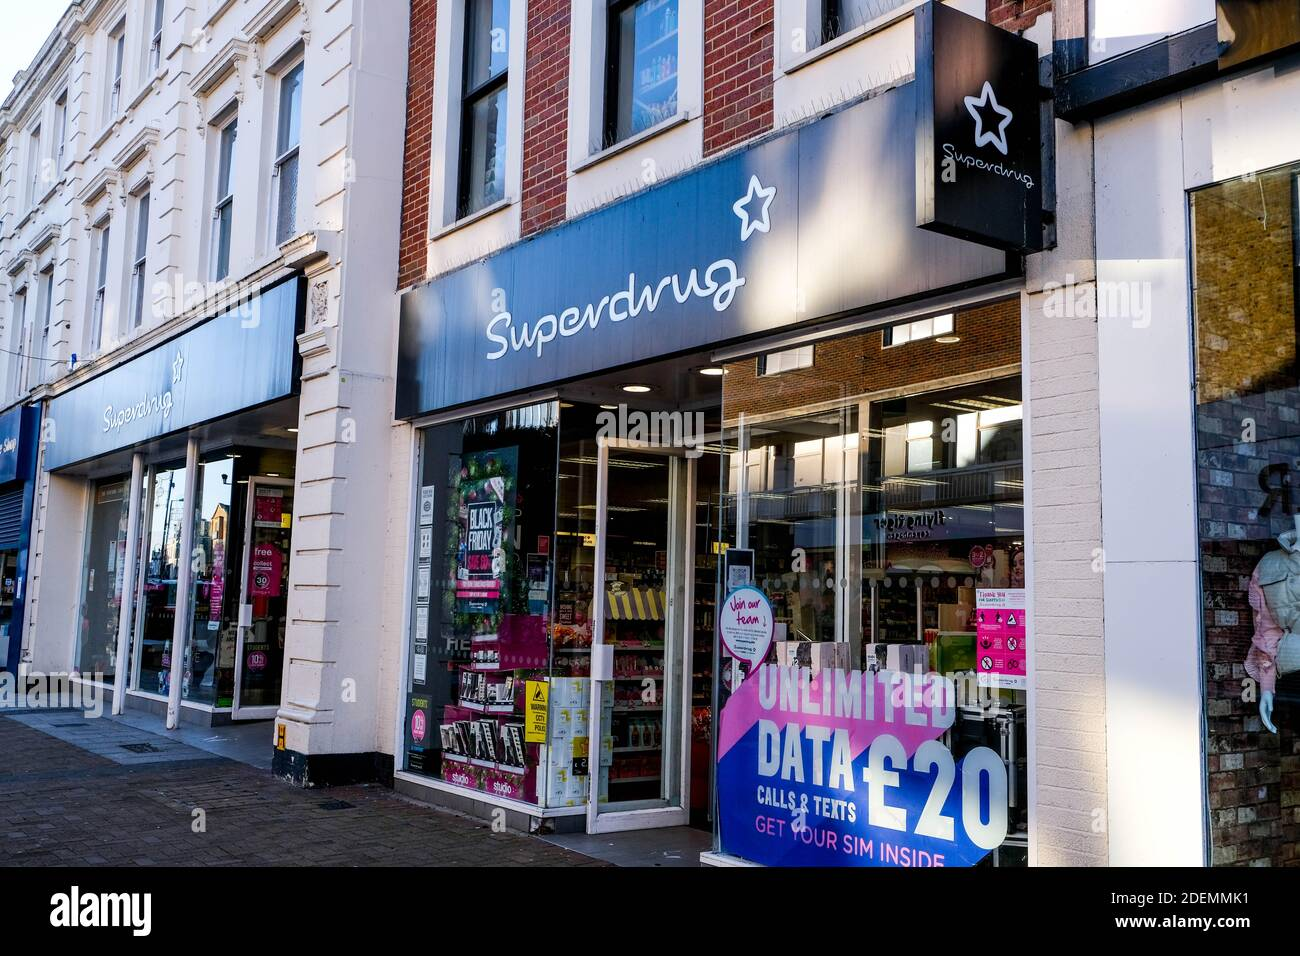 London UK, December 01 2020, Superdrug High Street Beauty and Pharmacy Shop Front Sign And Logo With No People Stock Photo